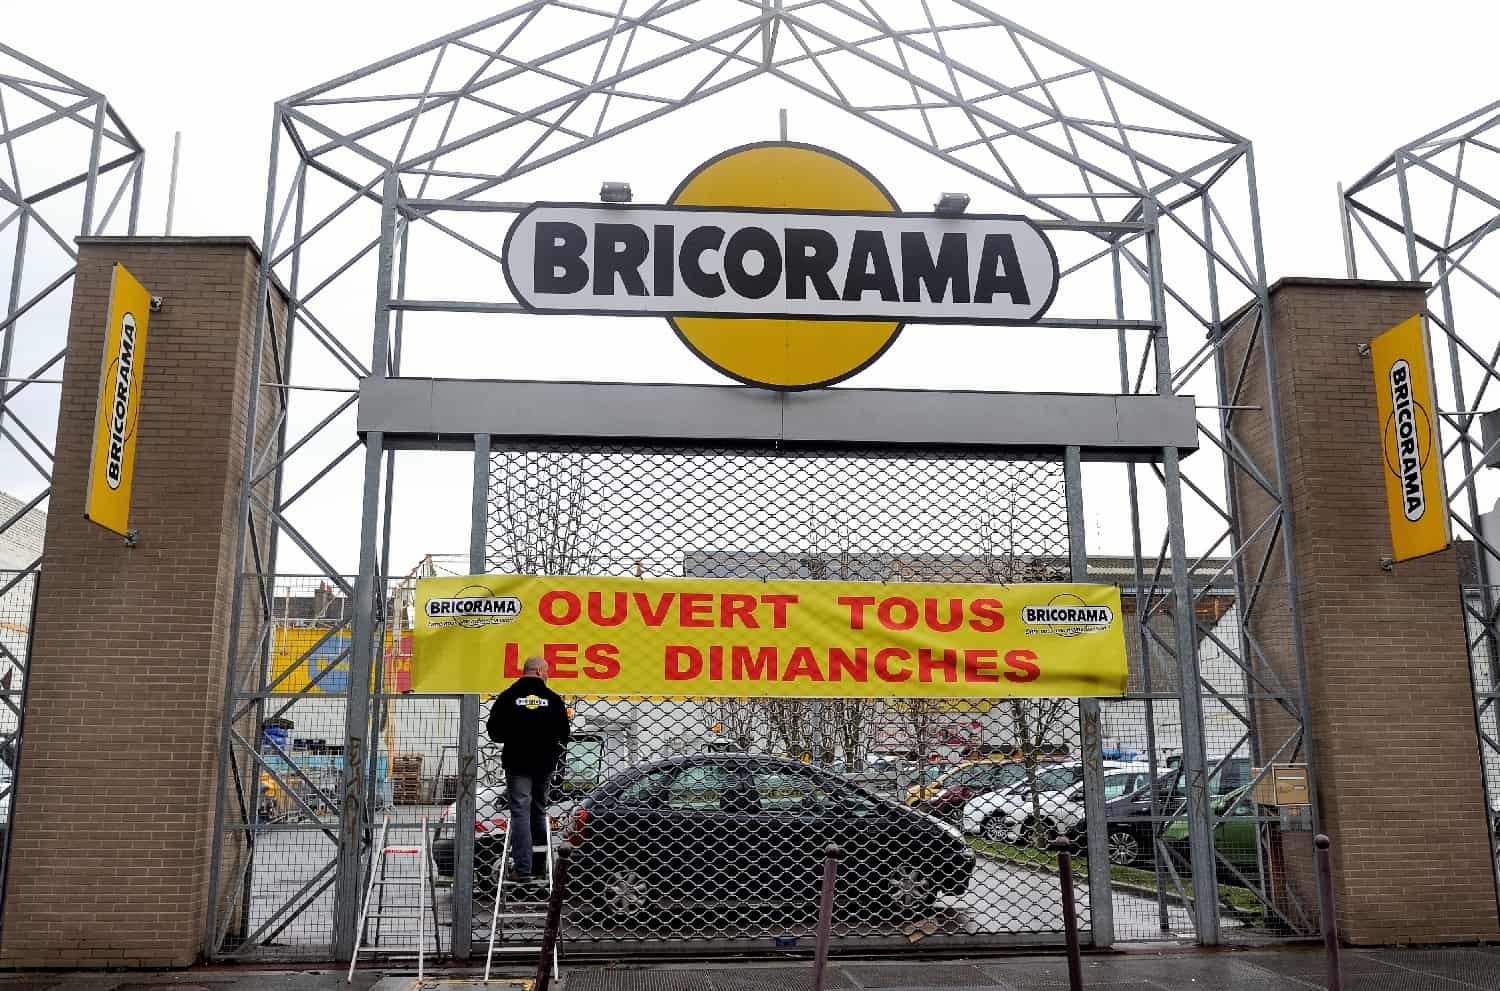 mr bricolage refuse bricorama les 156 millions d 39 euros pour son acquisition. Black Bedroom Furniture Sets. Home Design Ideas